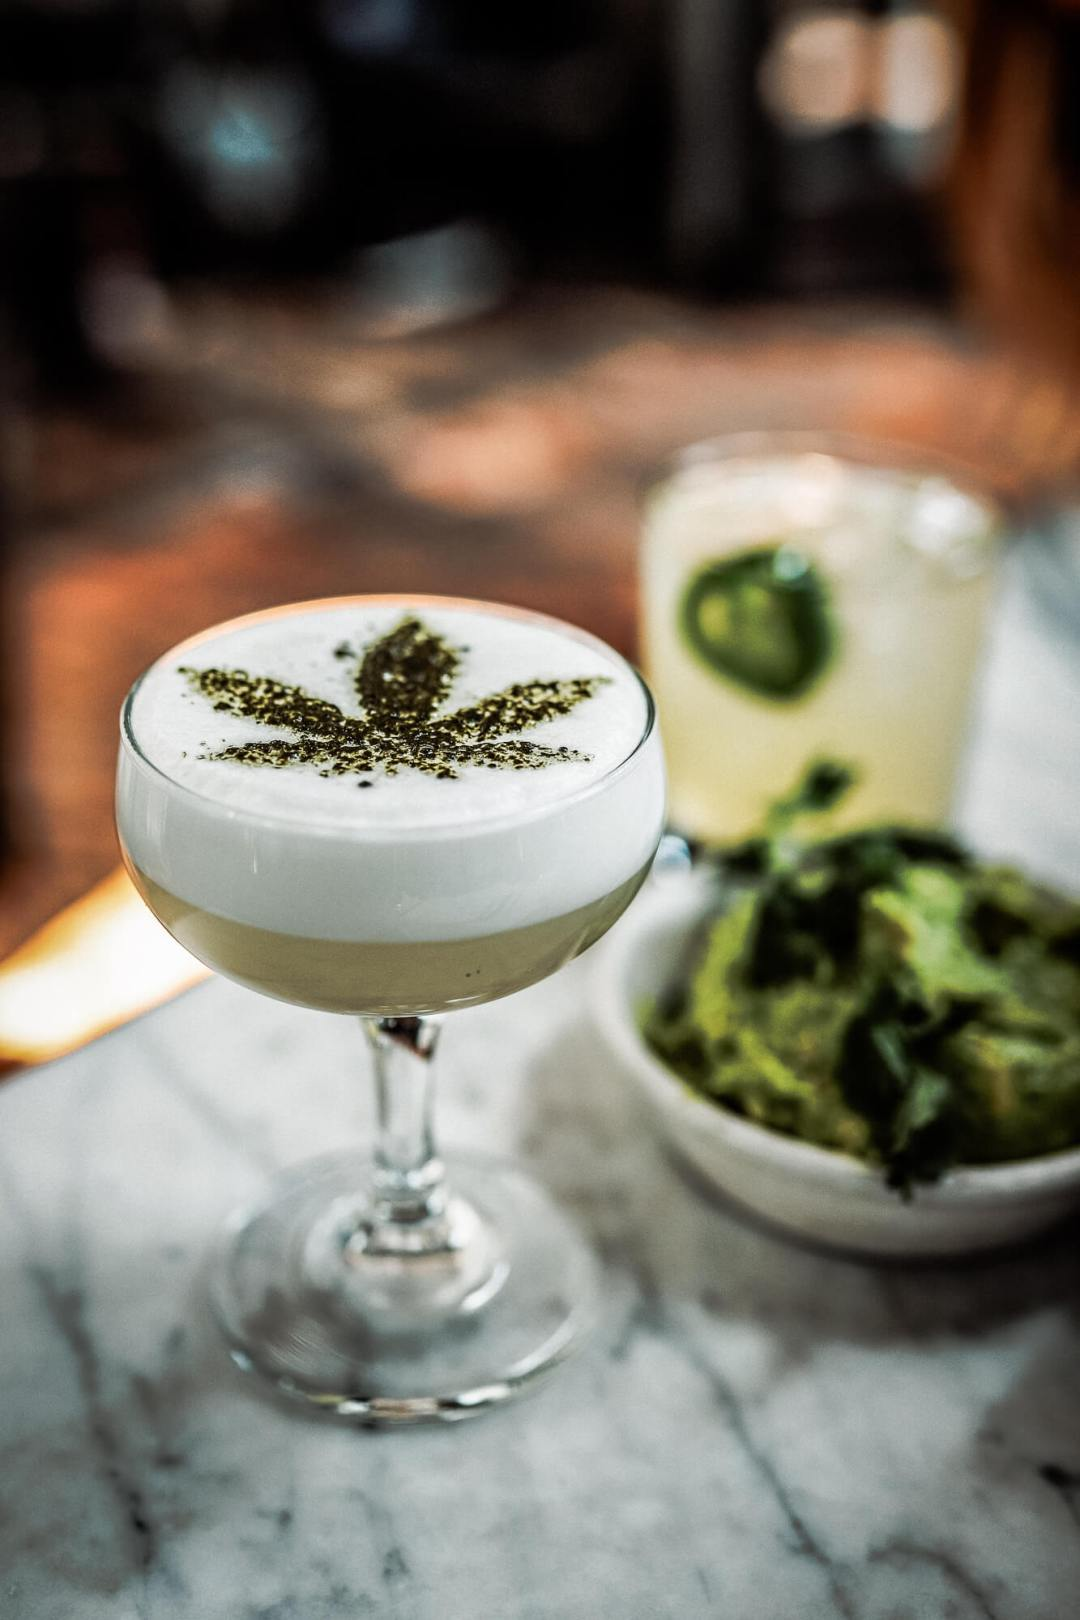 Culinary Trends for 2019 include Cannabis Cuisine